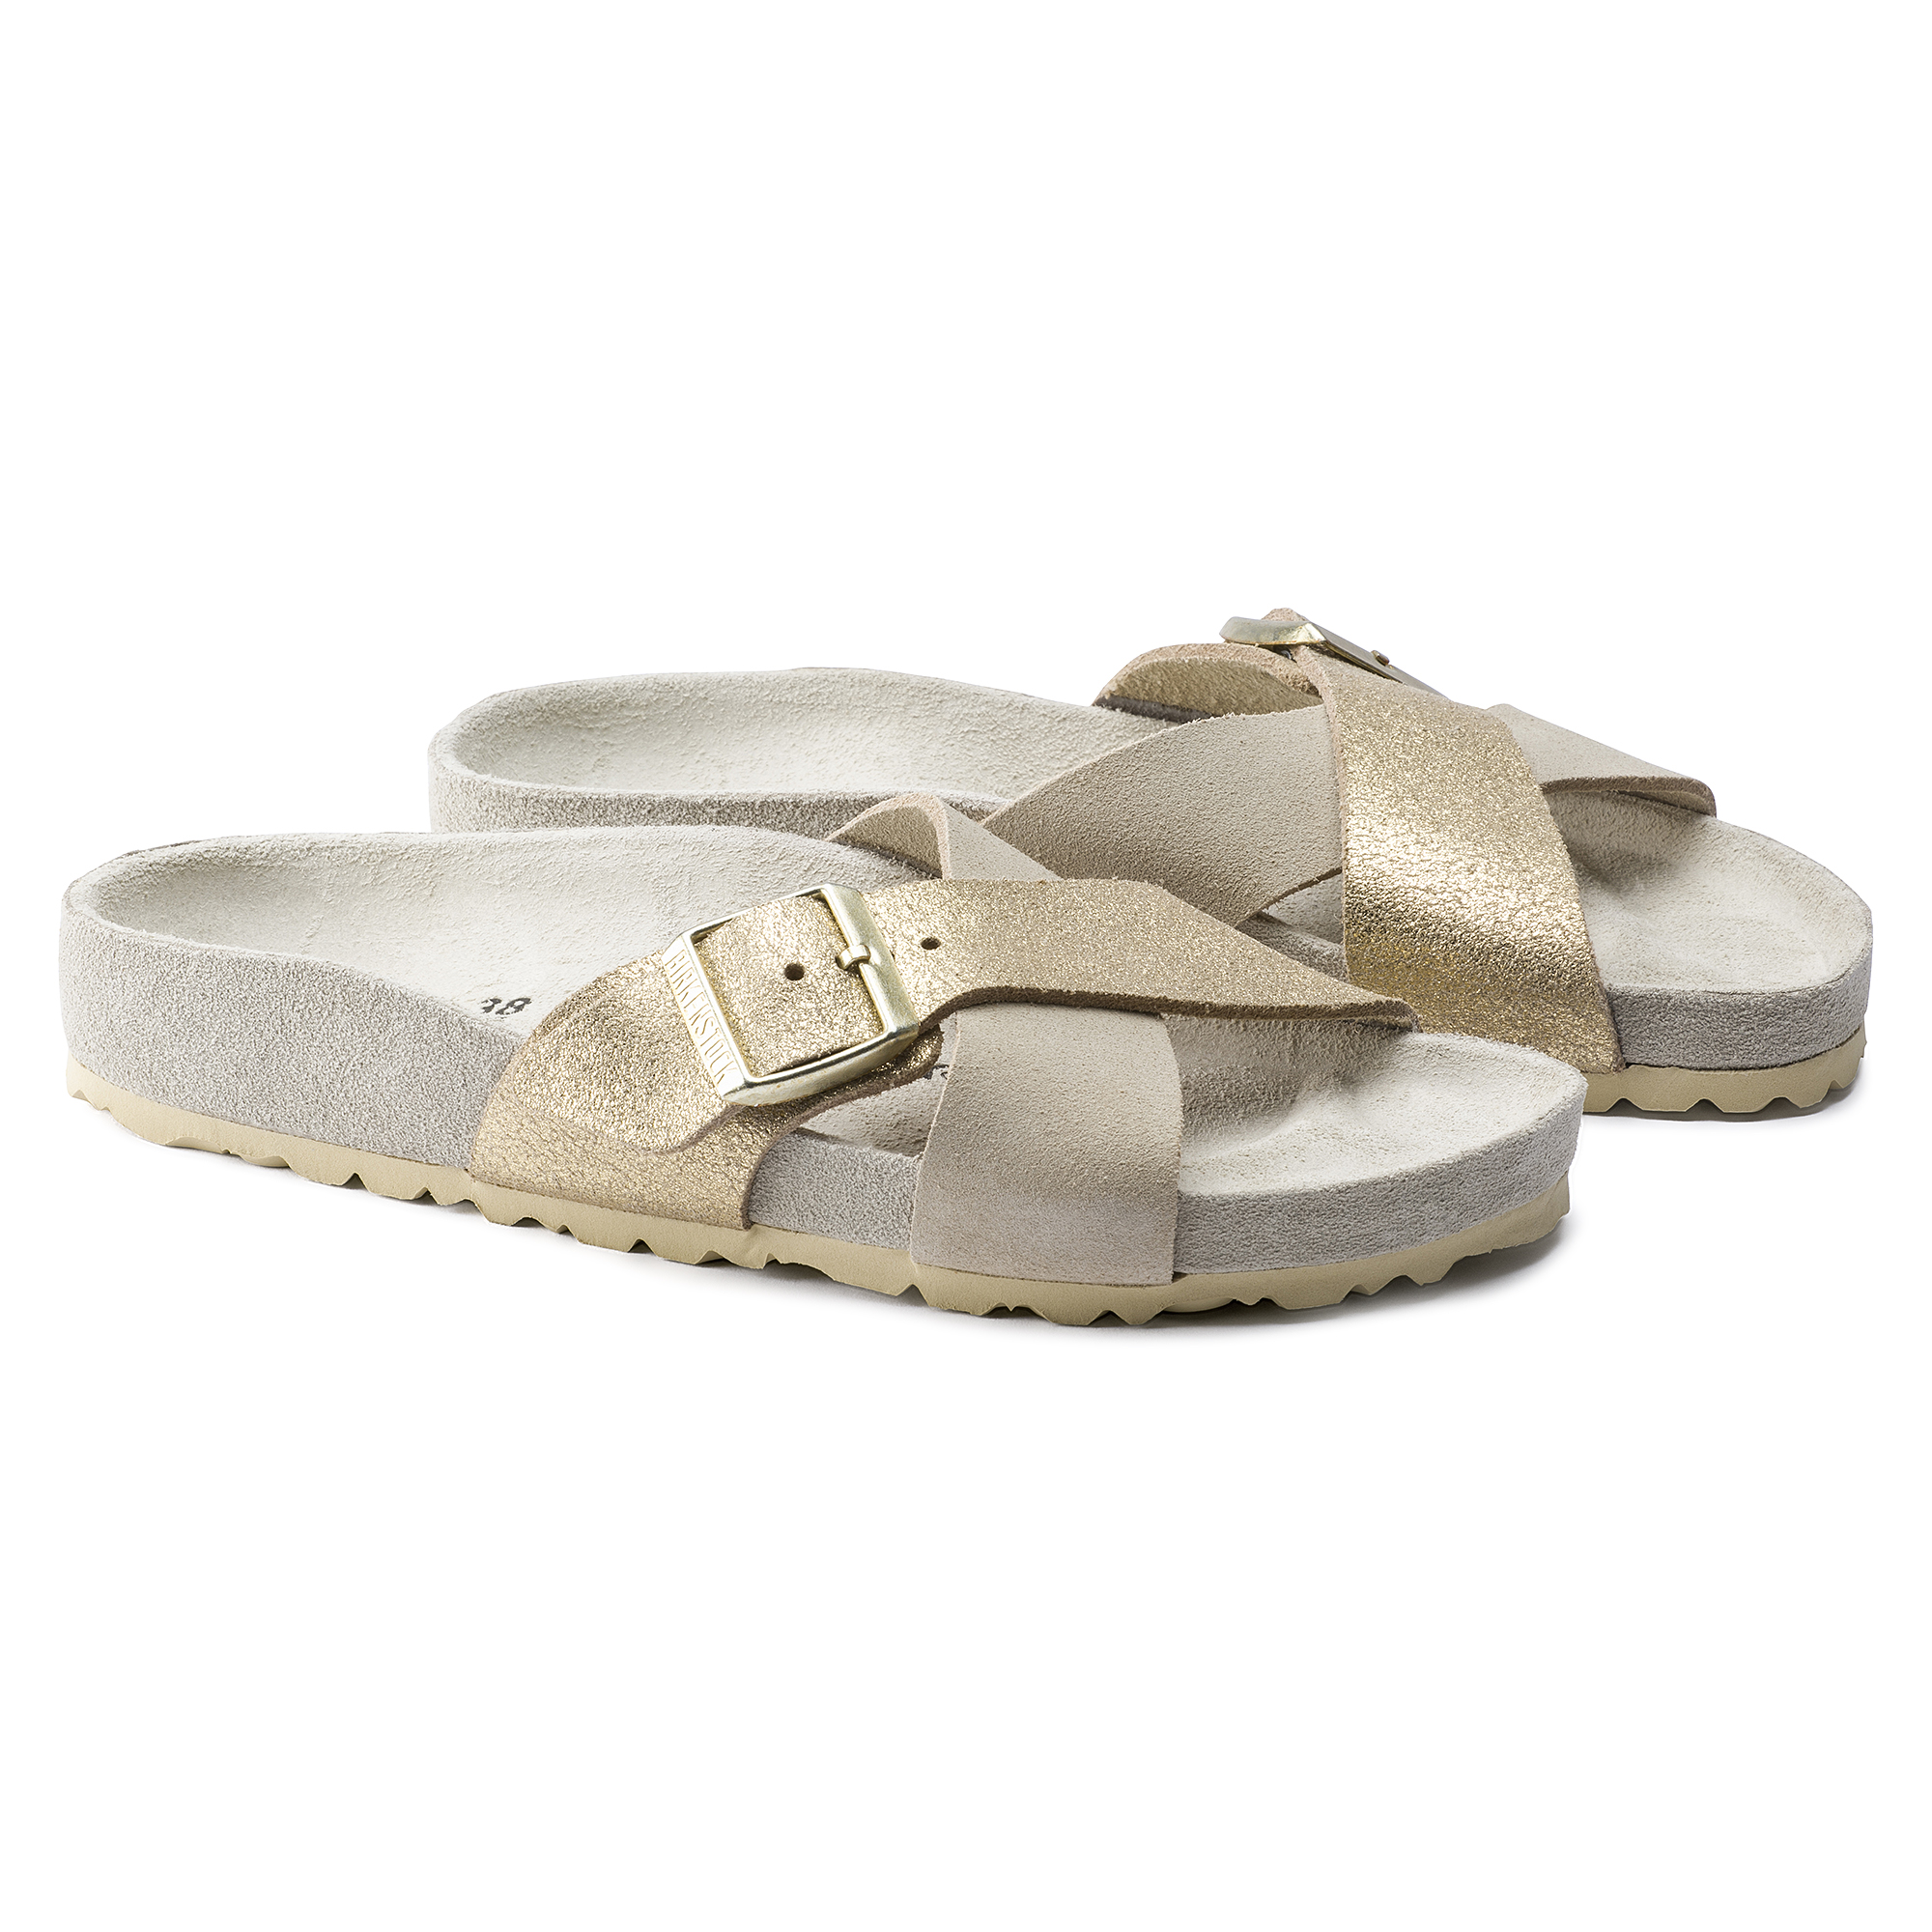 00455ef31c0 ... Siena Suede Leather Allover Taupe ...